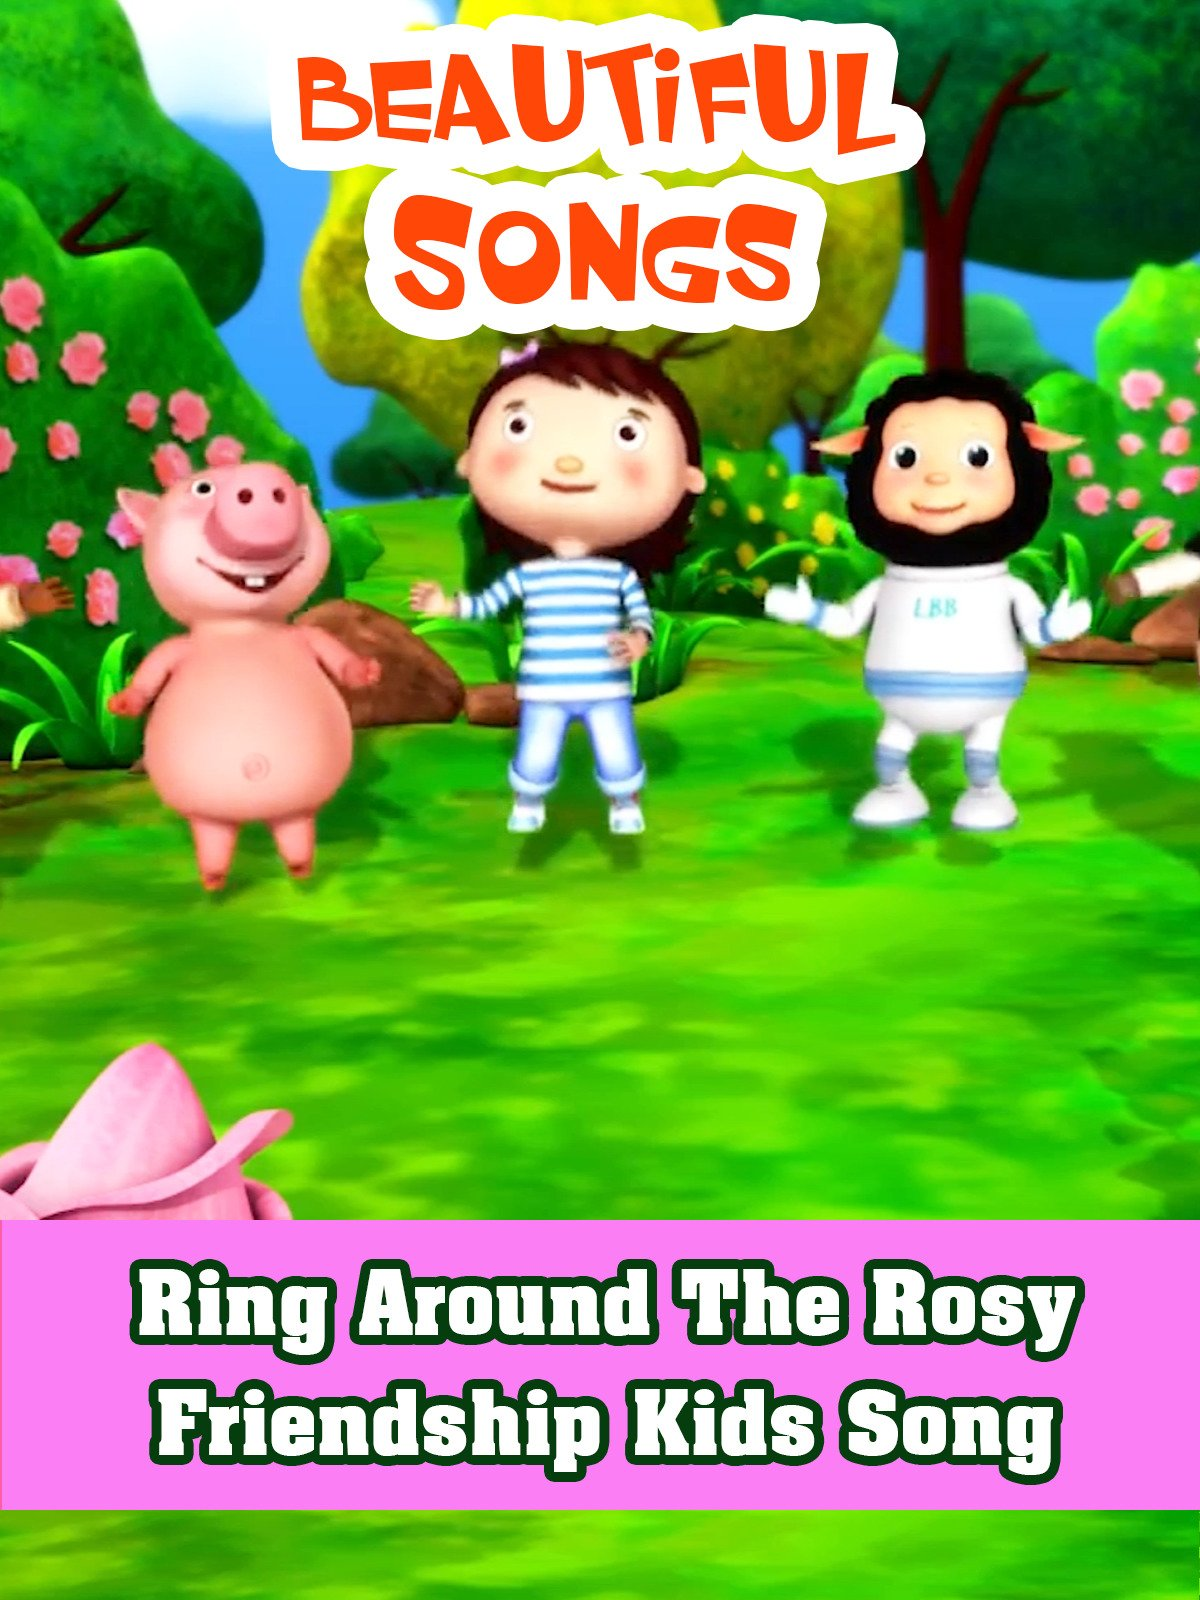 Ring Around the Rosy Friendship Kids Songs